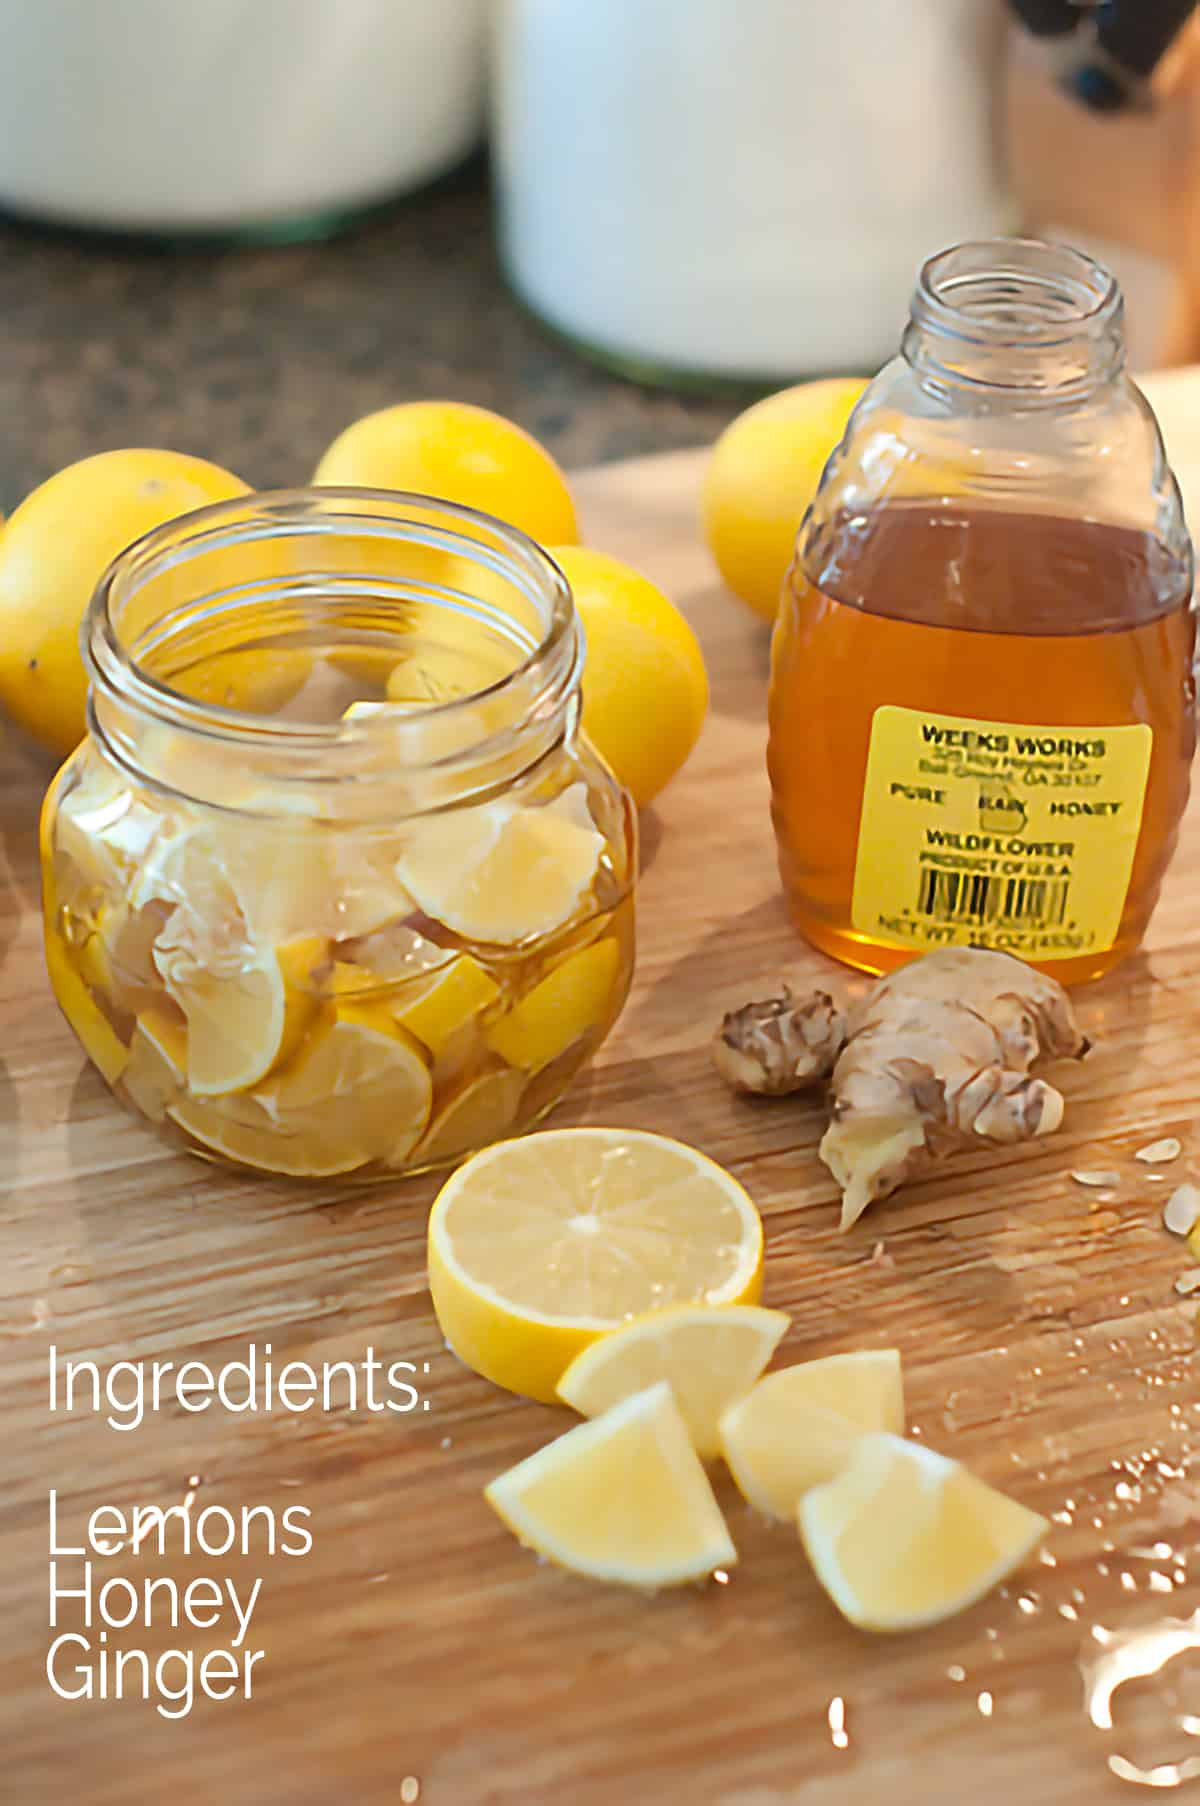 The Lemon, Honey, and Ginger Throat Soother being assembled: a jar containing lemon wedges and grated fresh ginger with honey poured over everything.